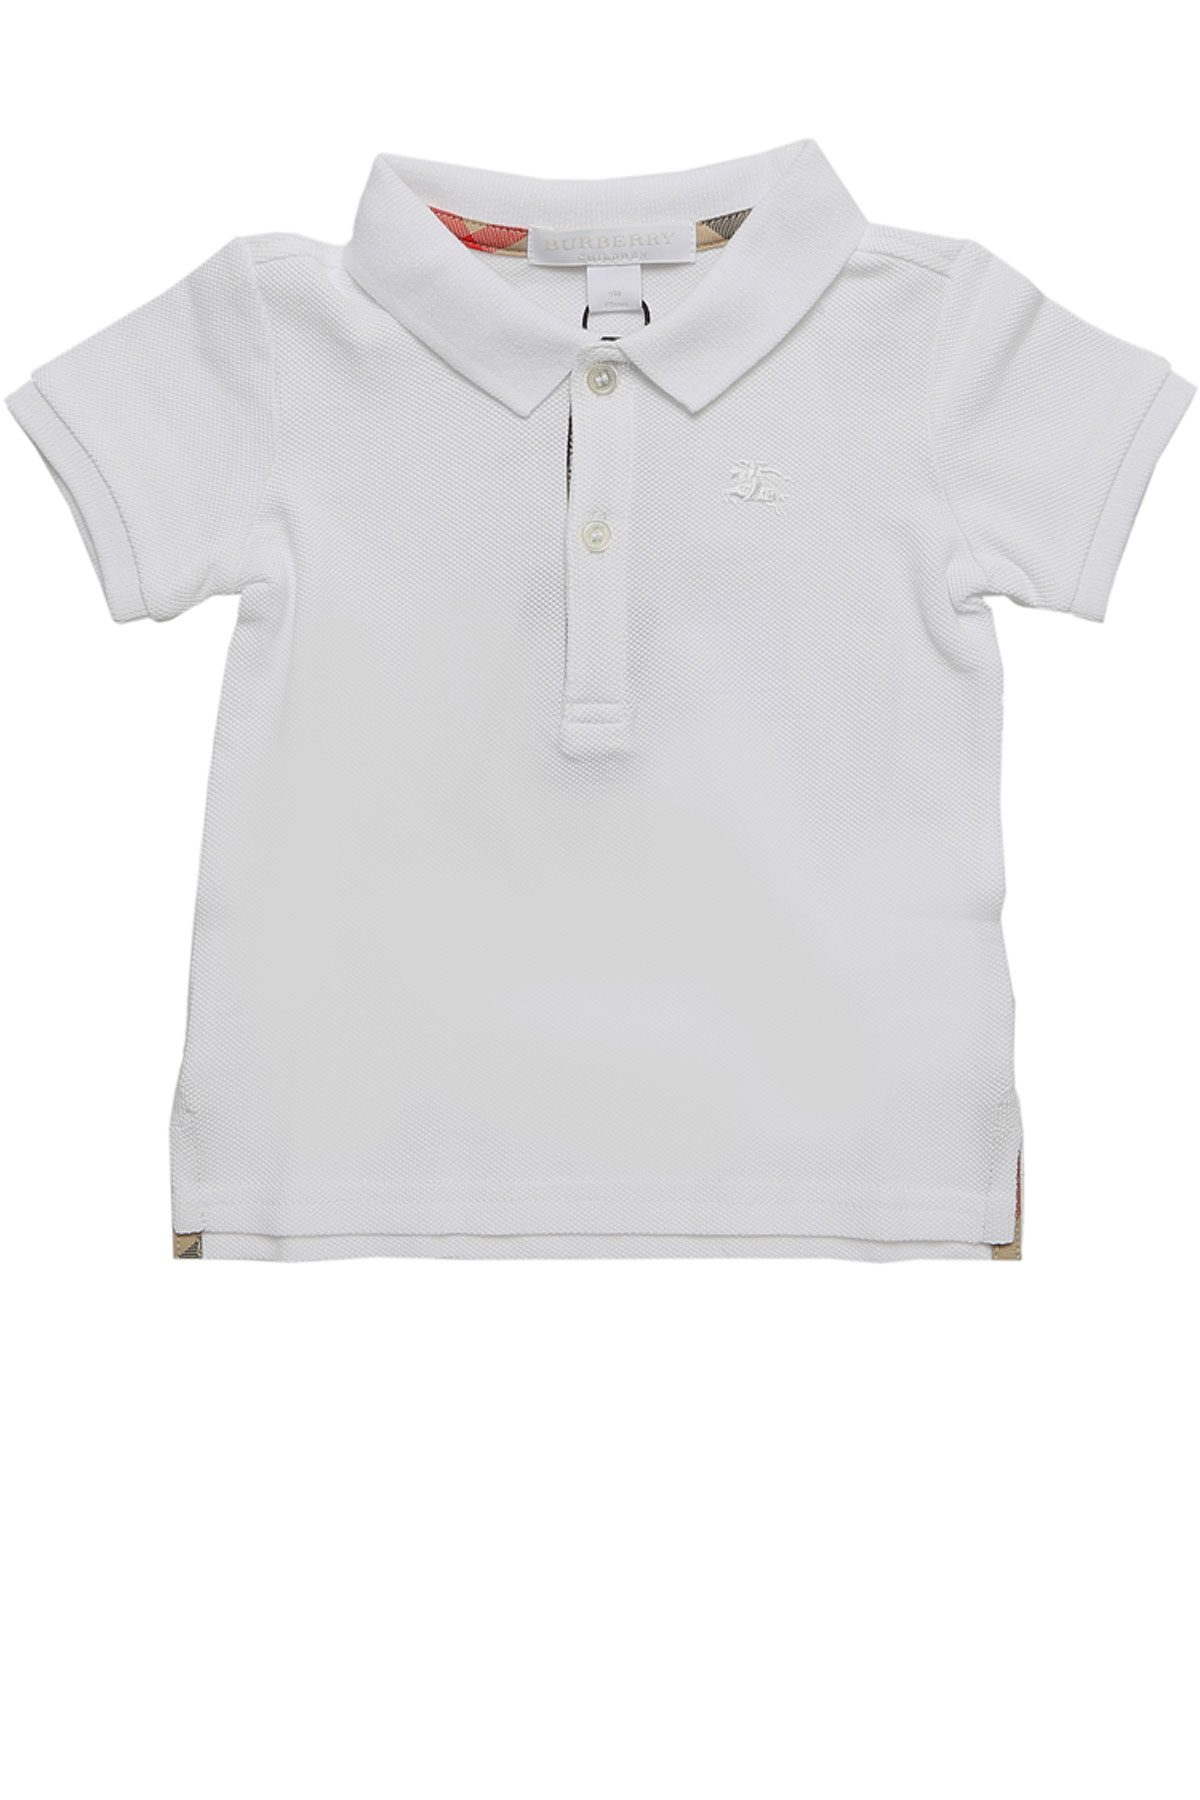 Image of Burberry Baby Polo Shirt for Boys, White, Cotton, 2017, 12M 18M 2Y 2Y 3Y